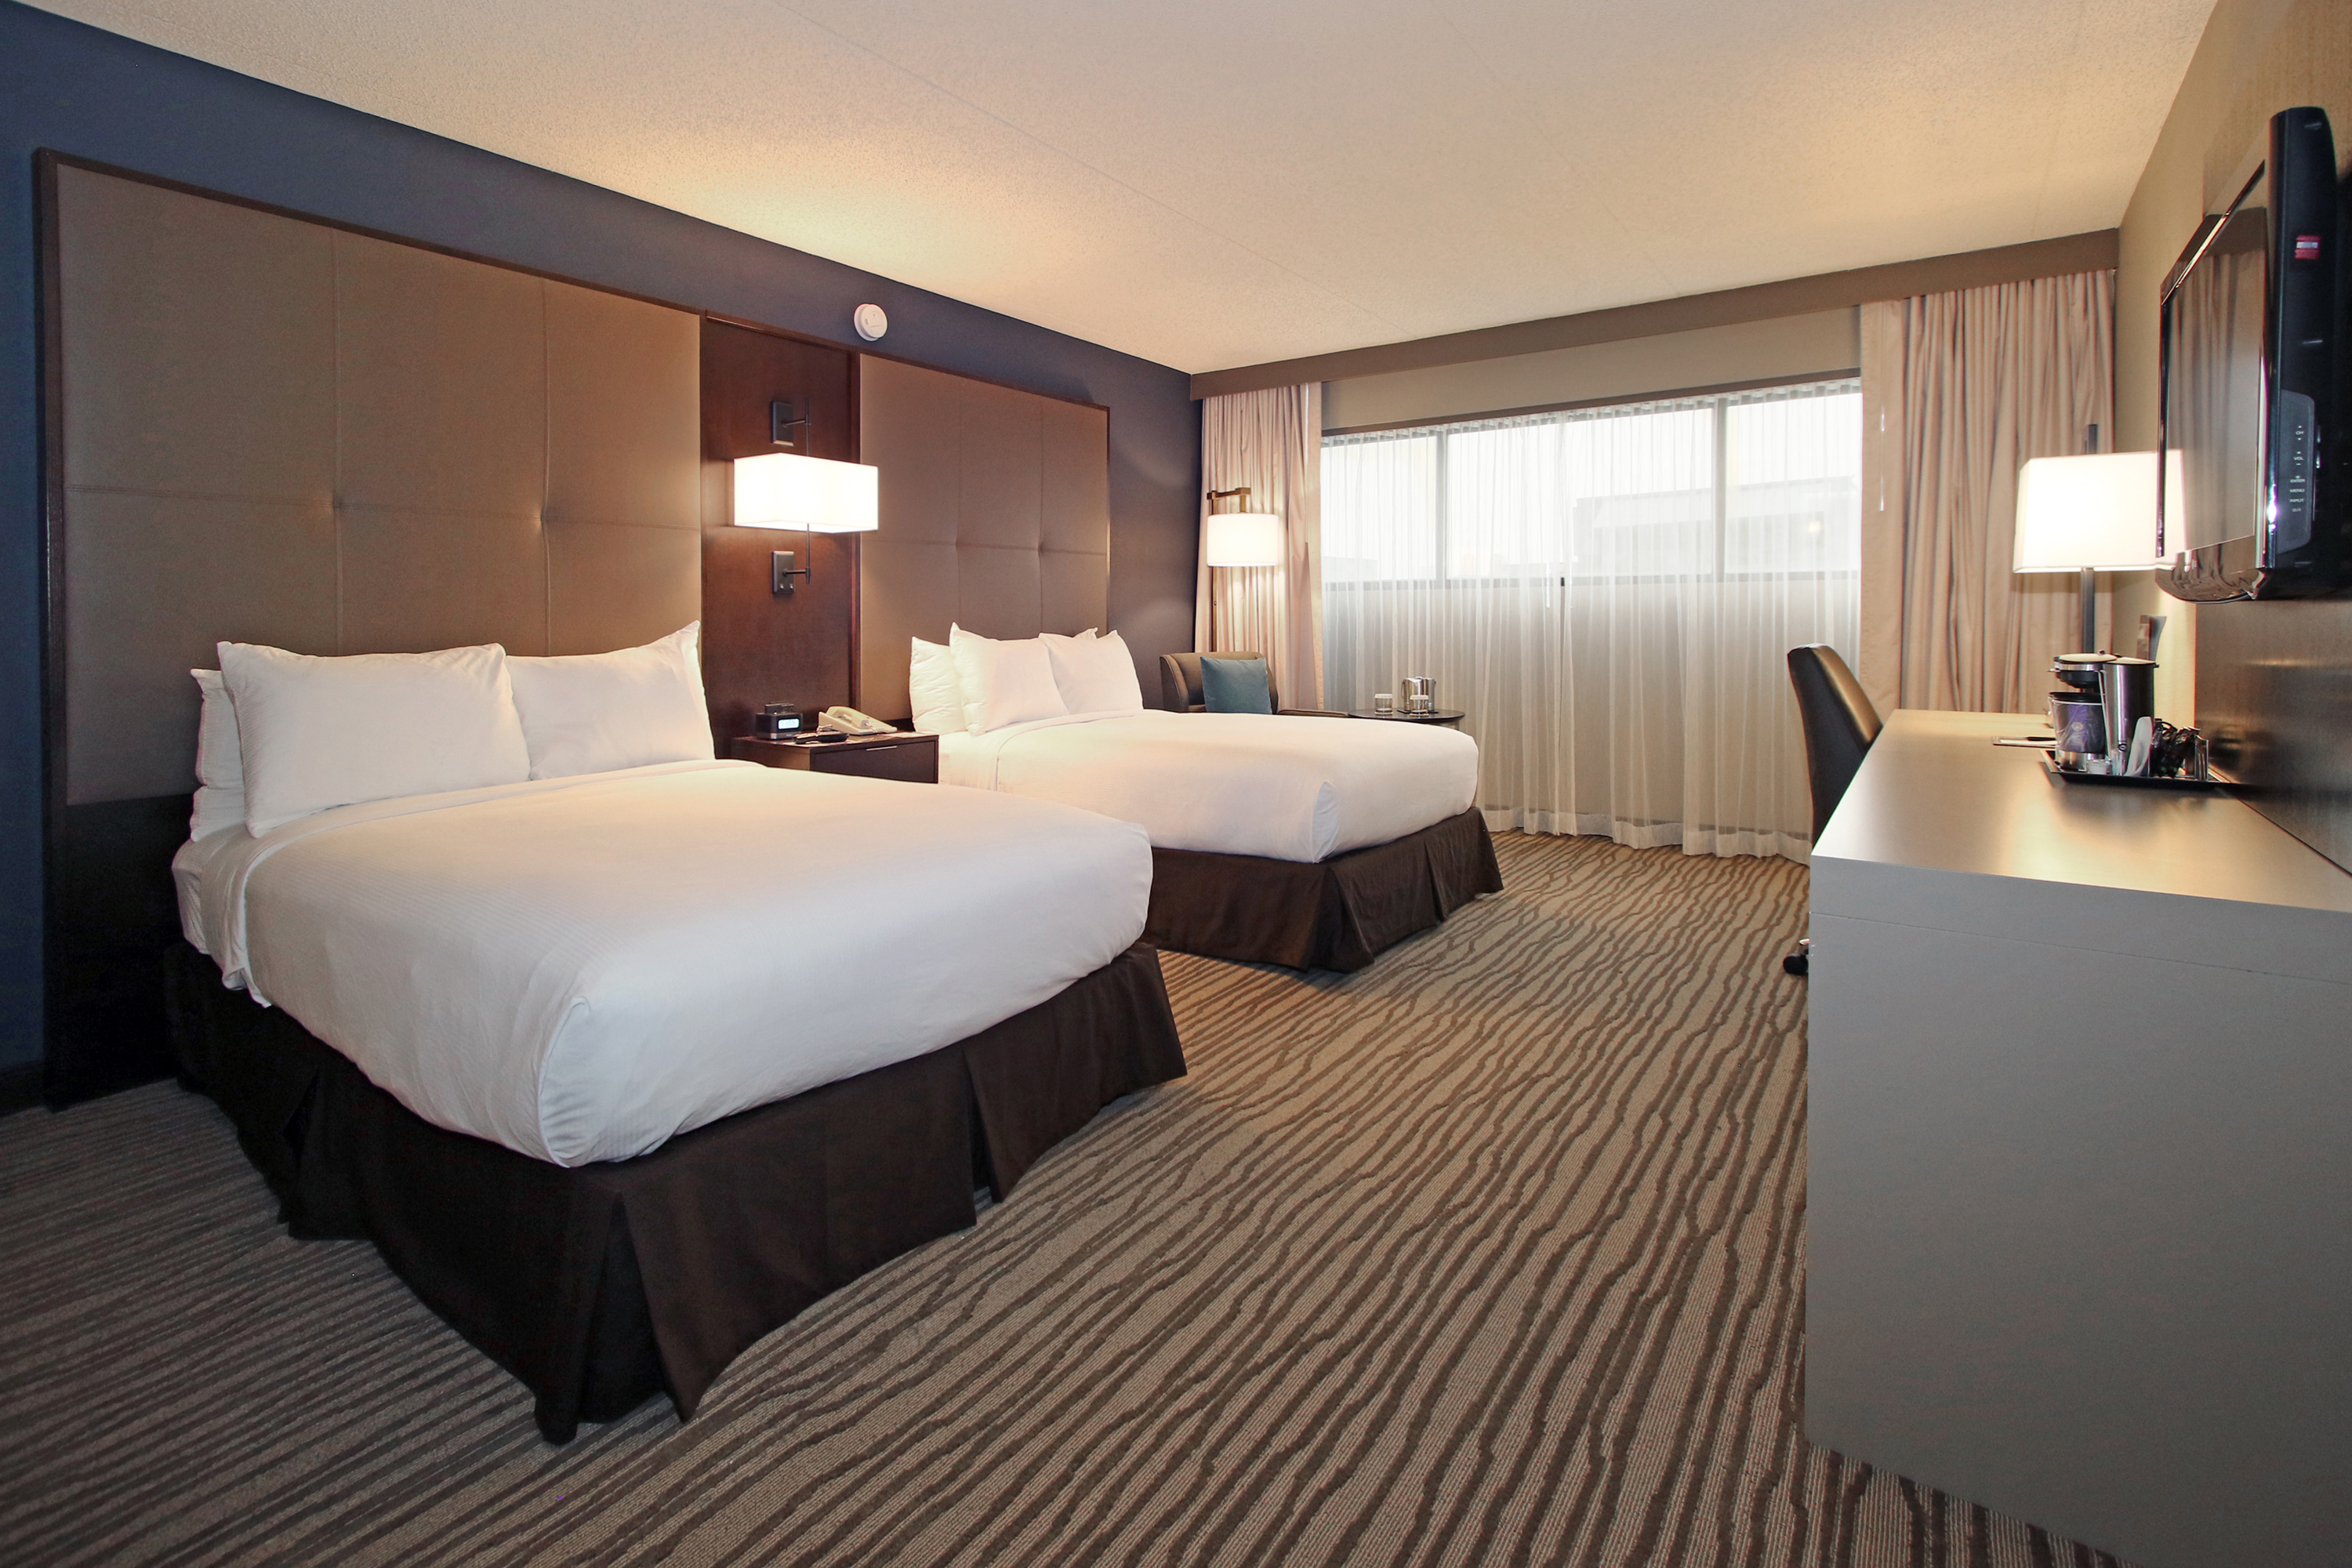 DoubleTree by Hilton Hotel two bed guestroom